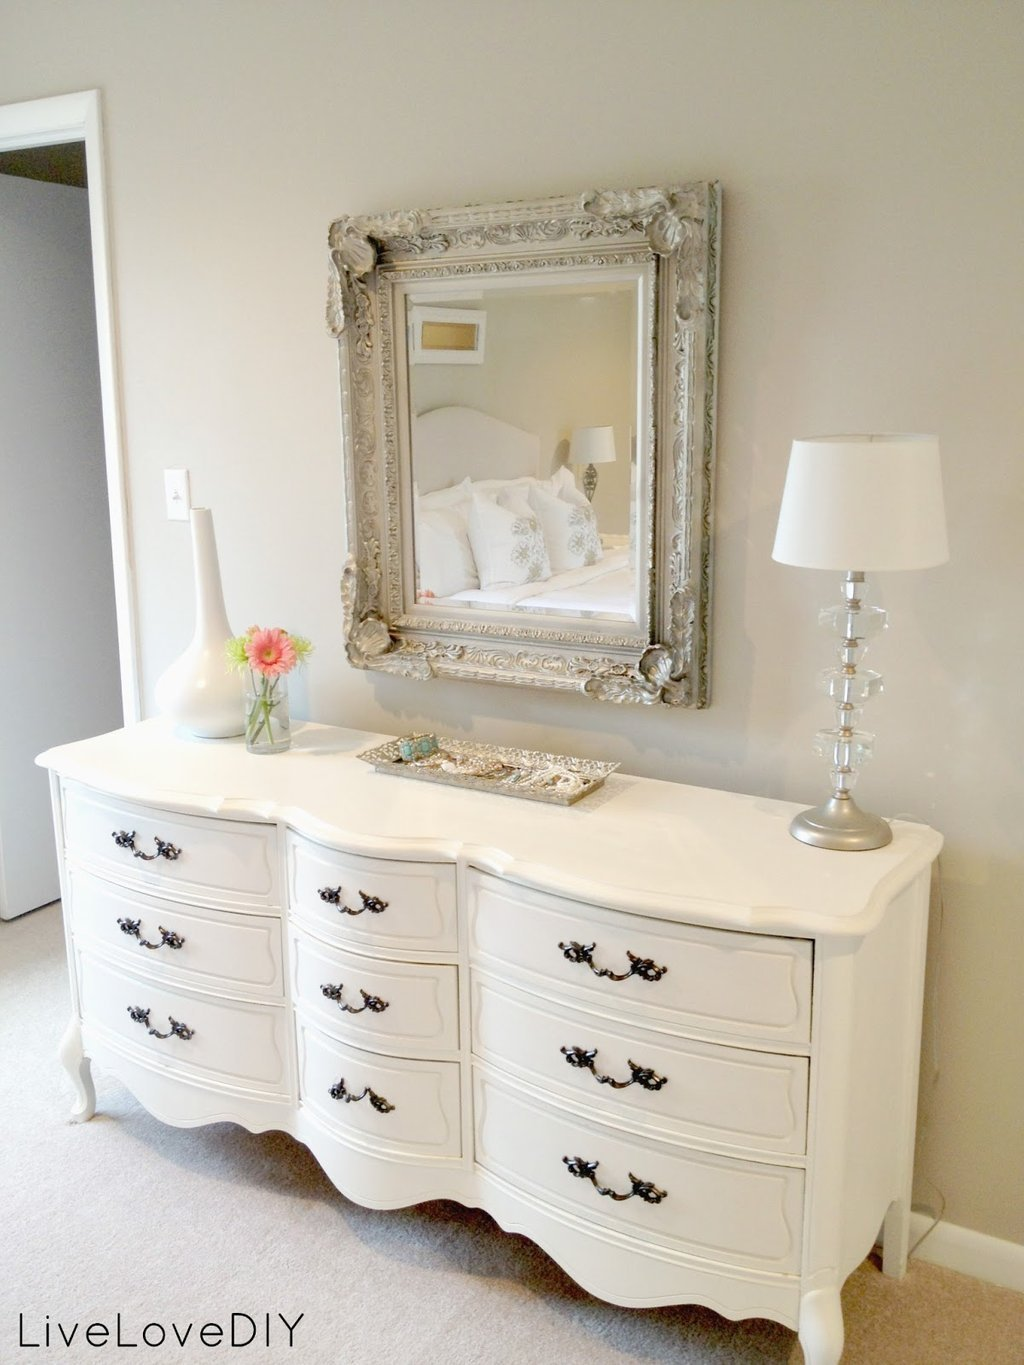 Best Simple Way To Replace Dresser Handles – Loccie Better With Pictures